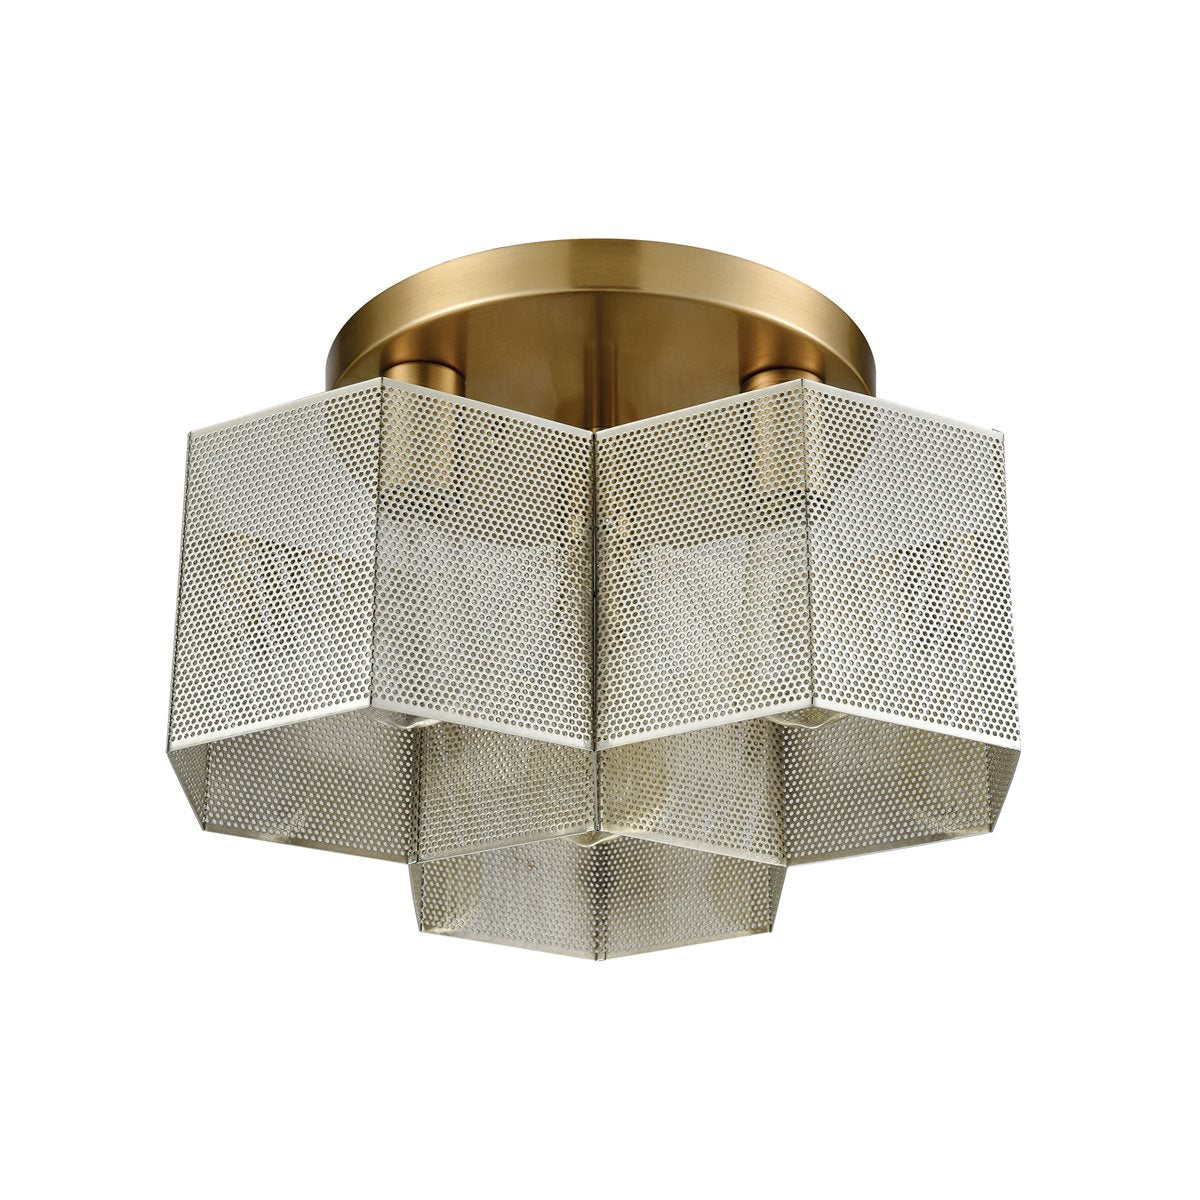 Compartir 3 Semi Flush in Polished Nickel & Satin Brass design by BD Fine Lighting